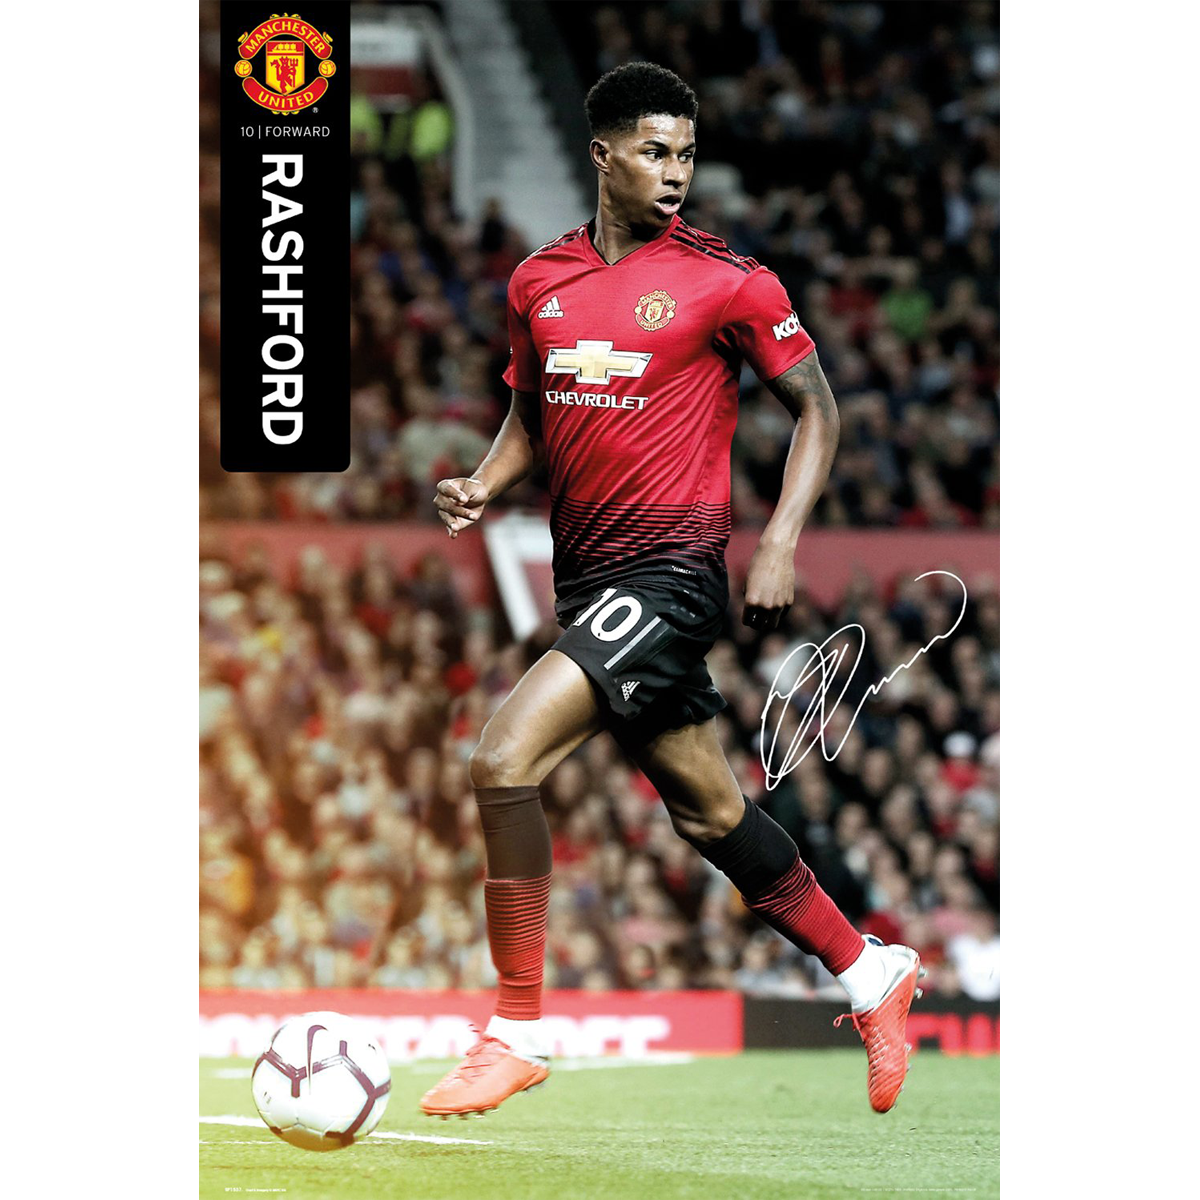 List of Nice Manchester United Wallpapers Rashford Manchester United Marcus Rashford Poster 18/19